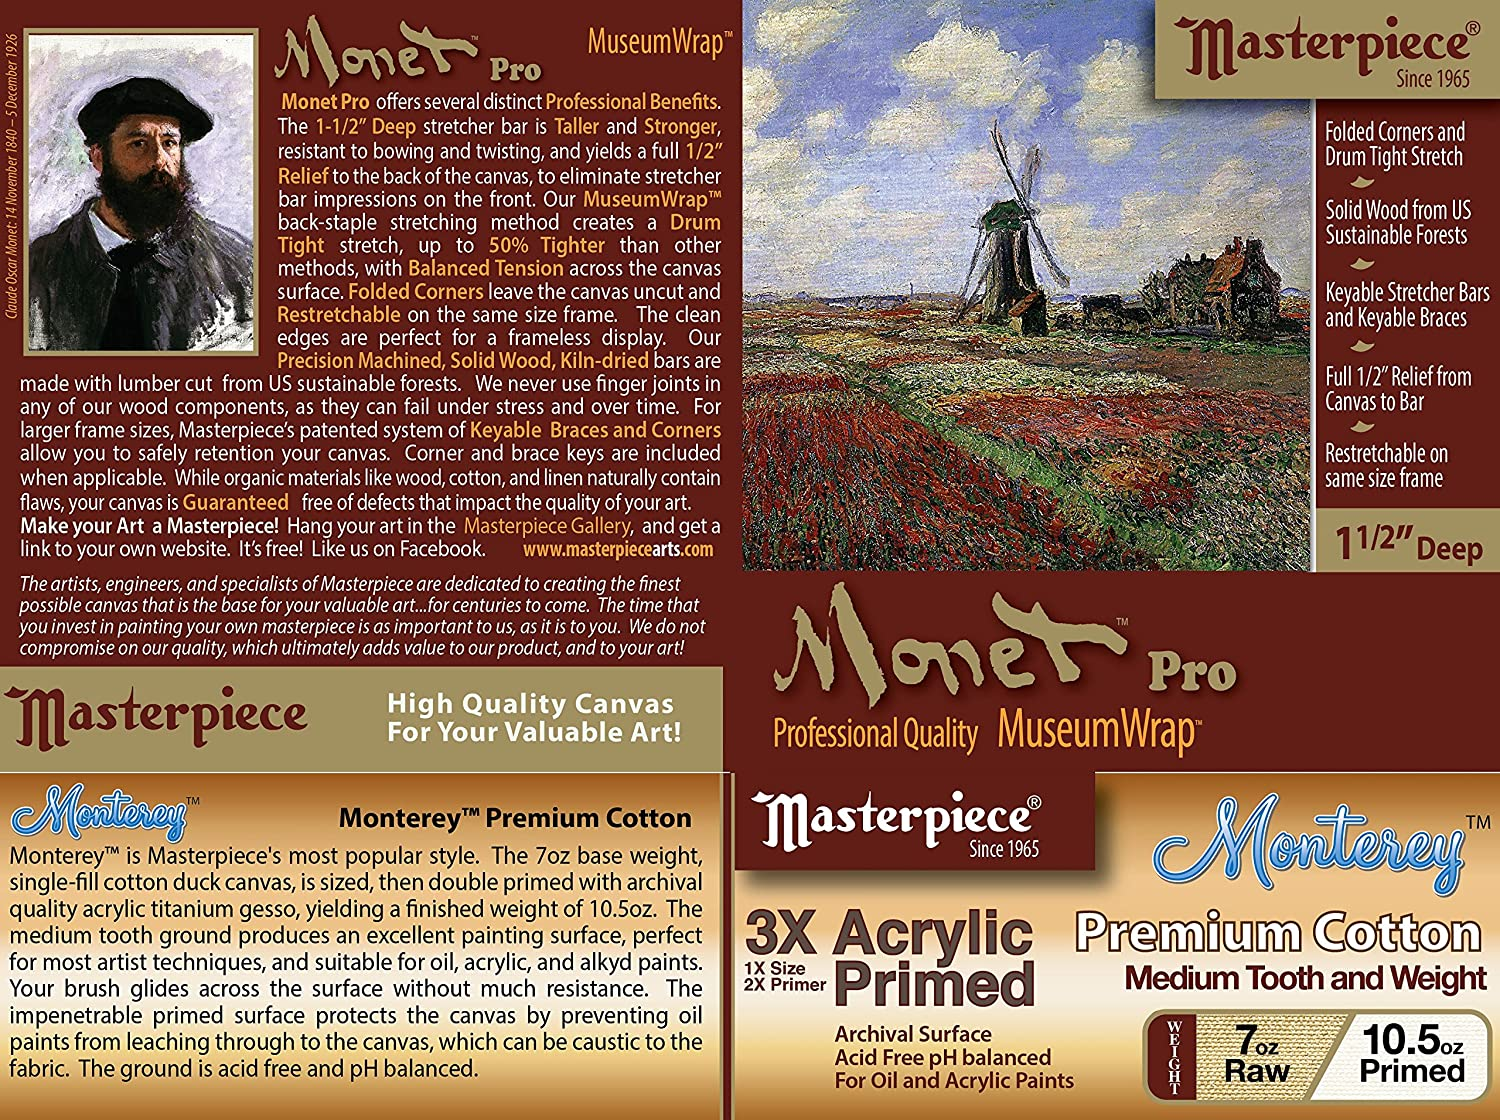 Masterpiece Artist Canvas 43055 Monet PRO 1-1//2 Deep 24 x 24 Monterey Most Popular Cotton 10.5oz 3X